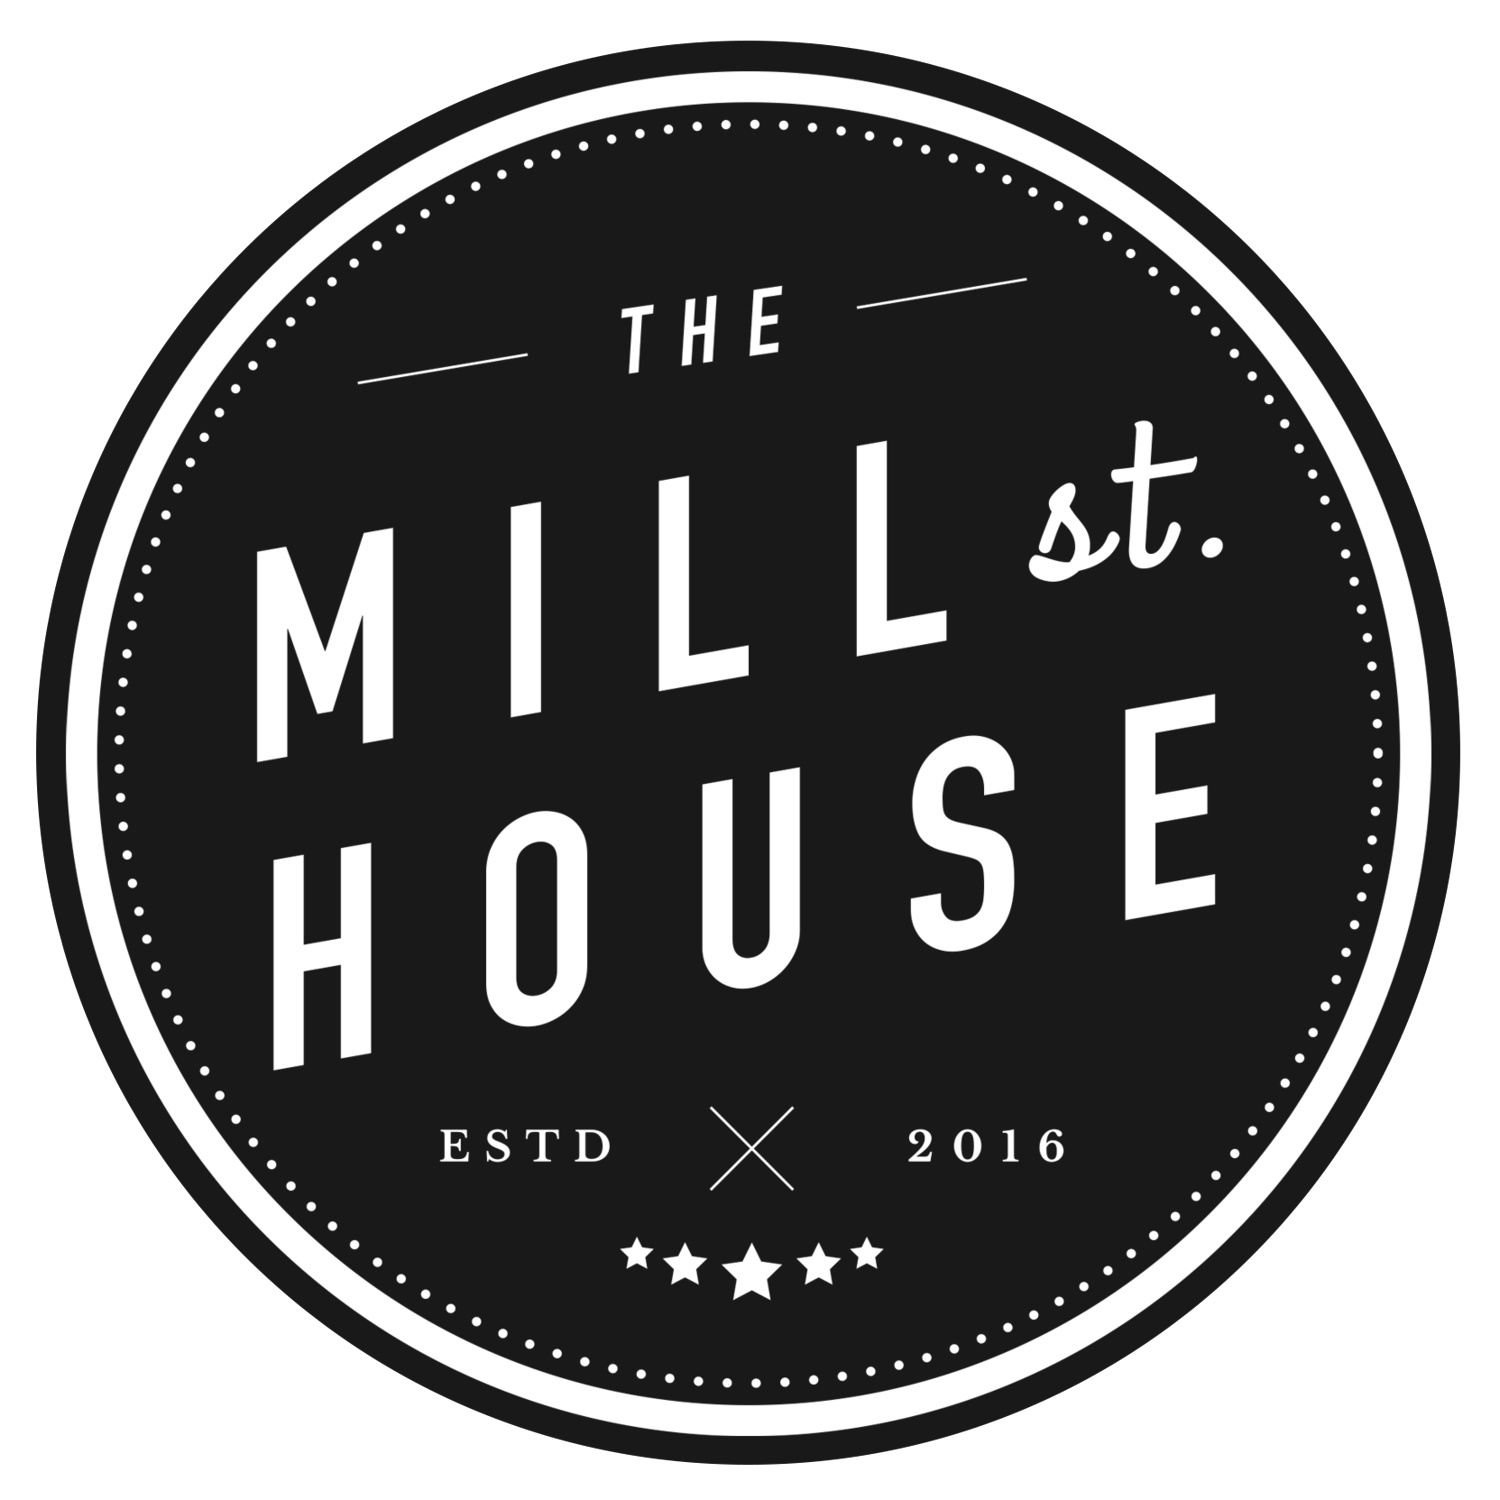 The Mill St. House